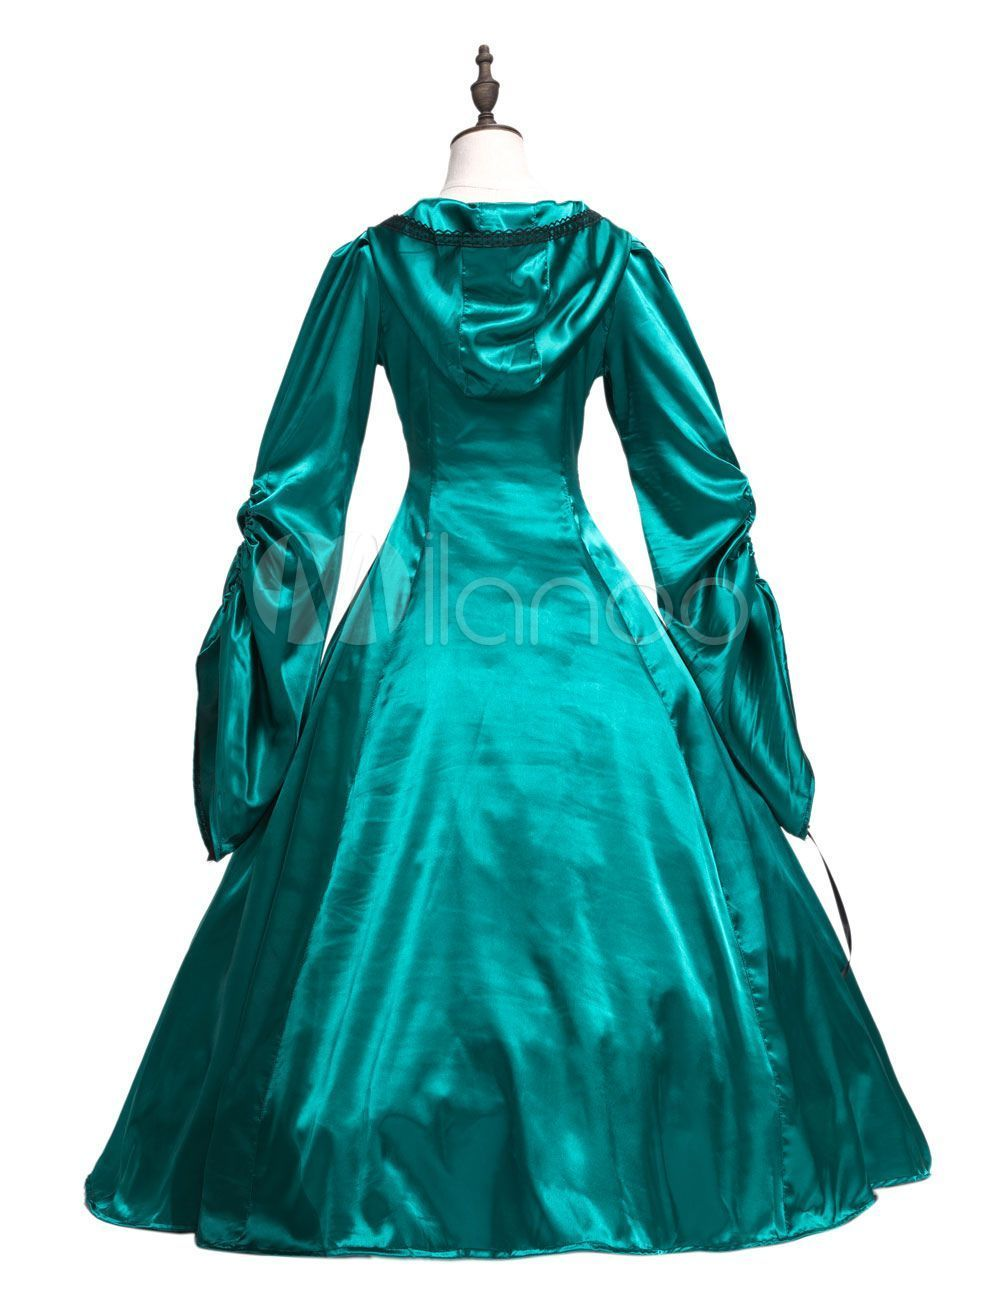 Halloween Retro Costume Green Victorian Dress Masquerade Ball Gowns Long Sleeve Vintage Costume #Green, #Victorian, #Dress #masqueradeballgowns Halloween Retro Costume Green Victorian Dress Masquerade Ball Gowns Long Sleeve Vintage Costume #Green, #Victorian, #Dress #masqueradeballgowns Halloween Retro Costume Green Victorian Dress Masquerade Ball Gowns Long Sleeve Vintage Costume #Green, #Victorian, #Dress #masqueradeballgowns Halloween Retro Costume Green Victorian Dress Masquerade Ball Gowns #masqueradeballgowns